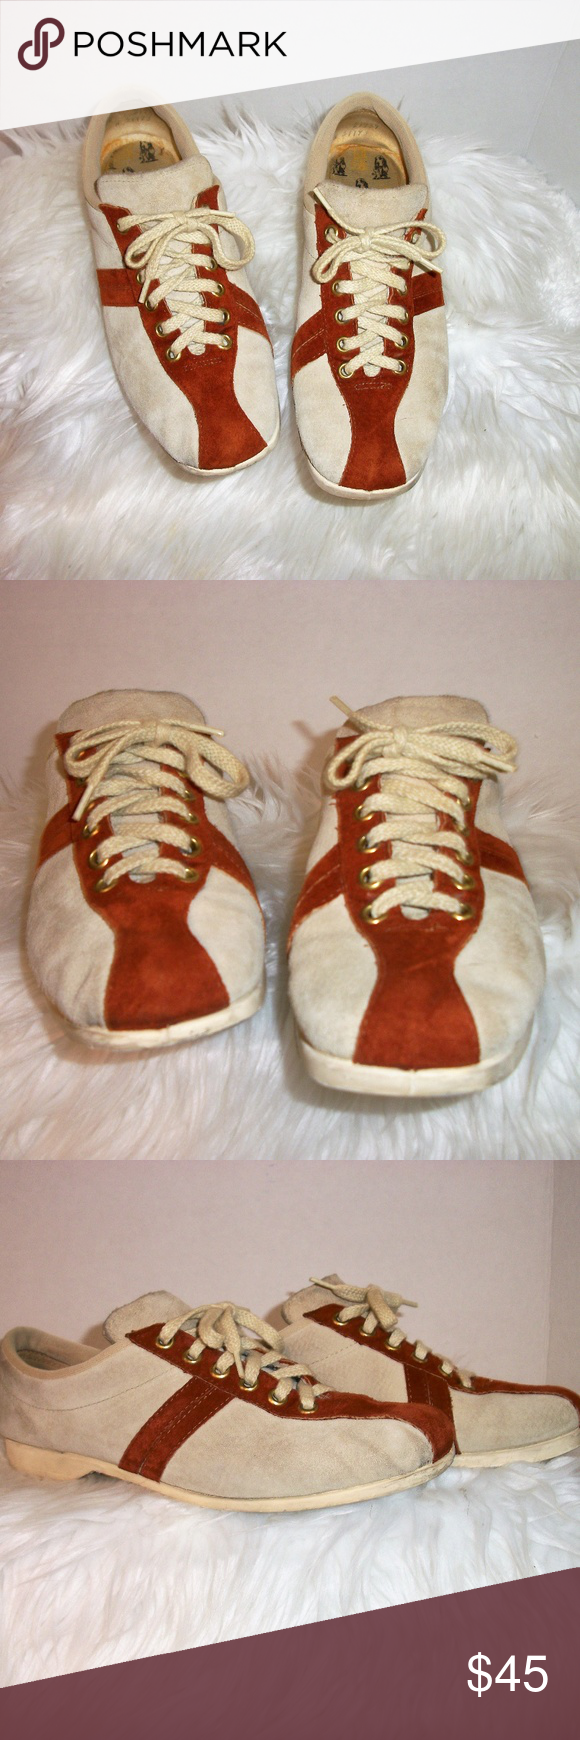 Vintage Hush Puppie Size 8 Suede Bowling Shoes About These Shoes Brand Hush Puppies Made In Usa Size 8 Do Not Wash Hand Wash Soles And Use Suede Bowling Shoes